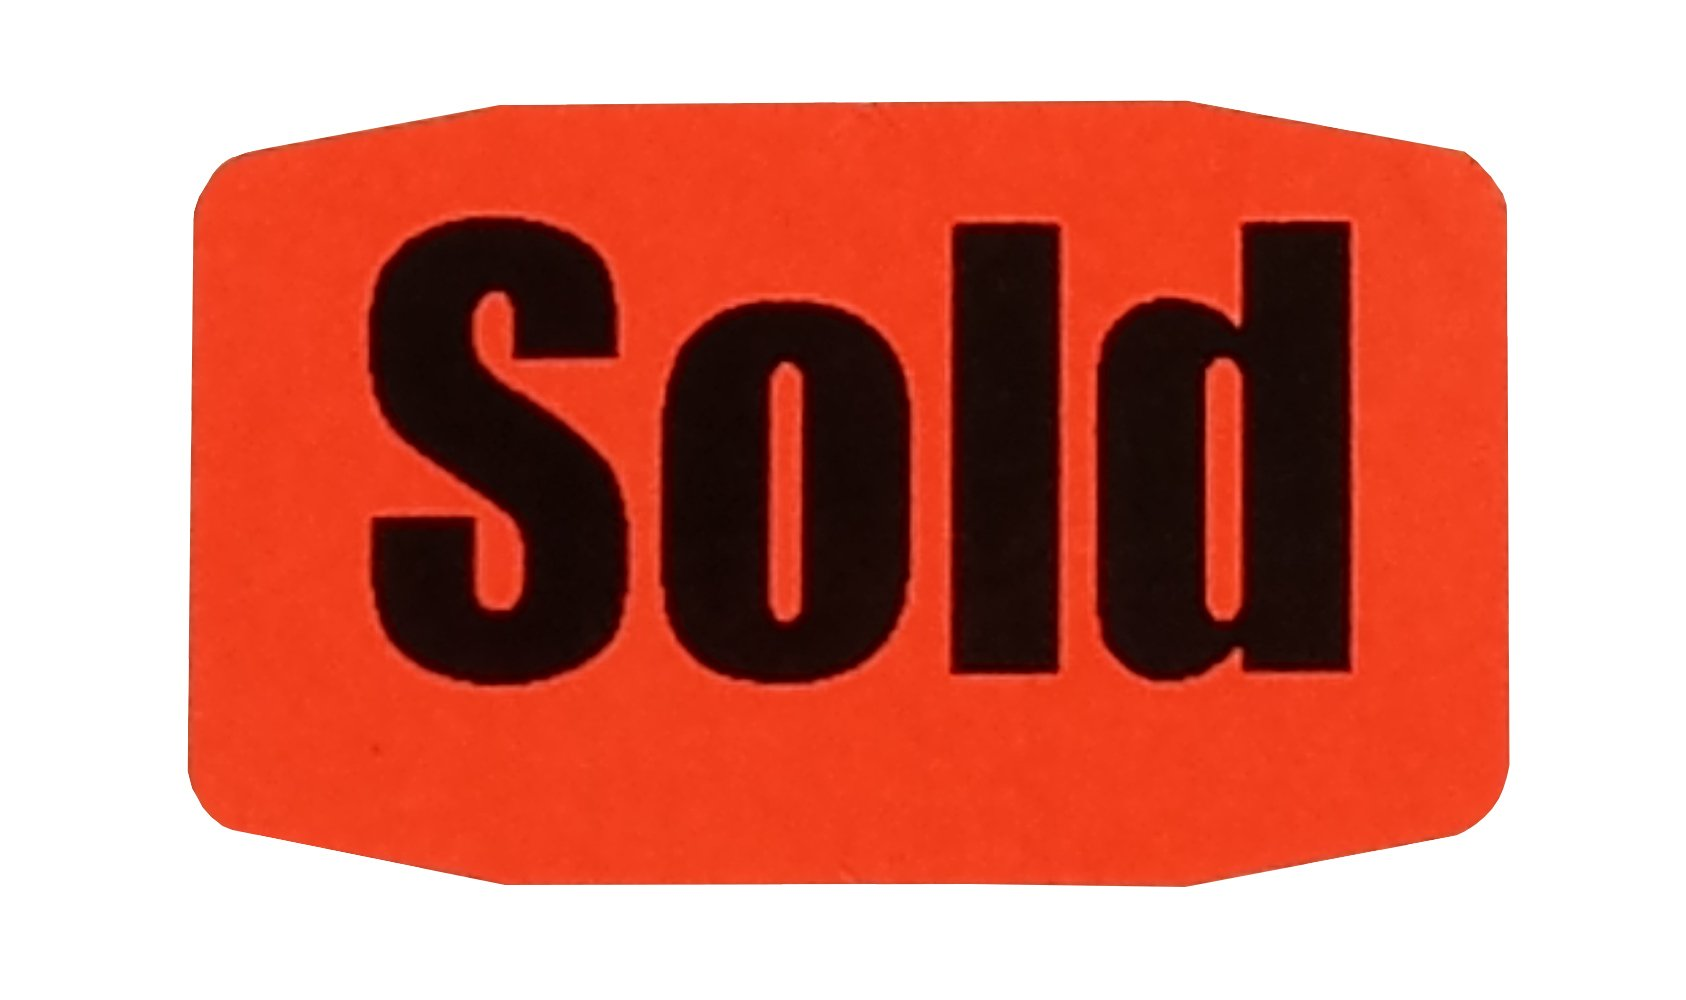 SOLD Stickers, Fluorescent Red, 1000